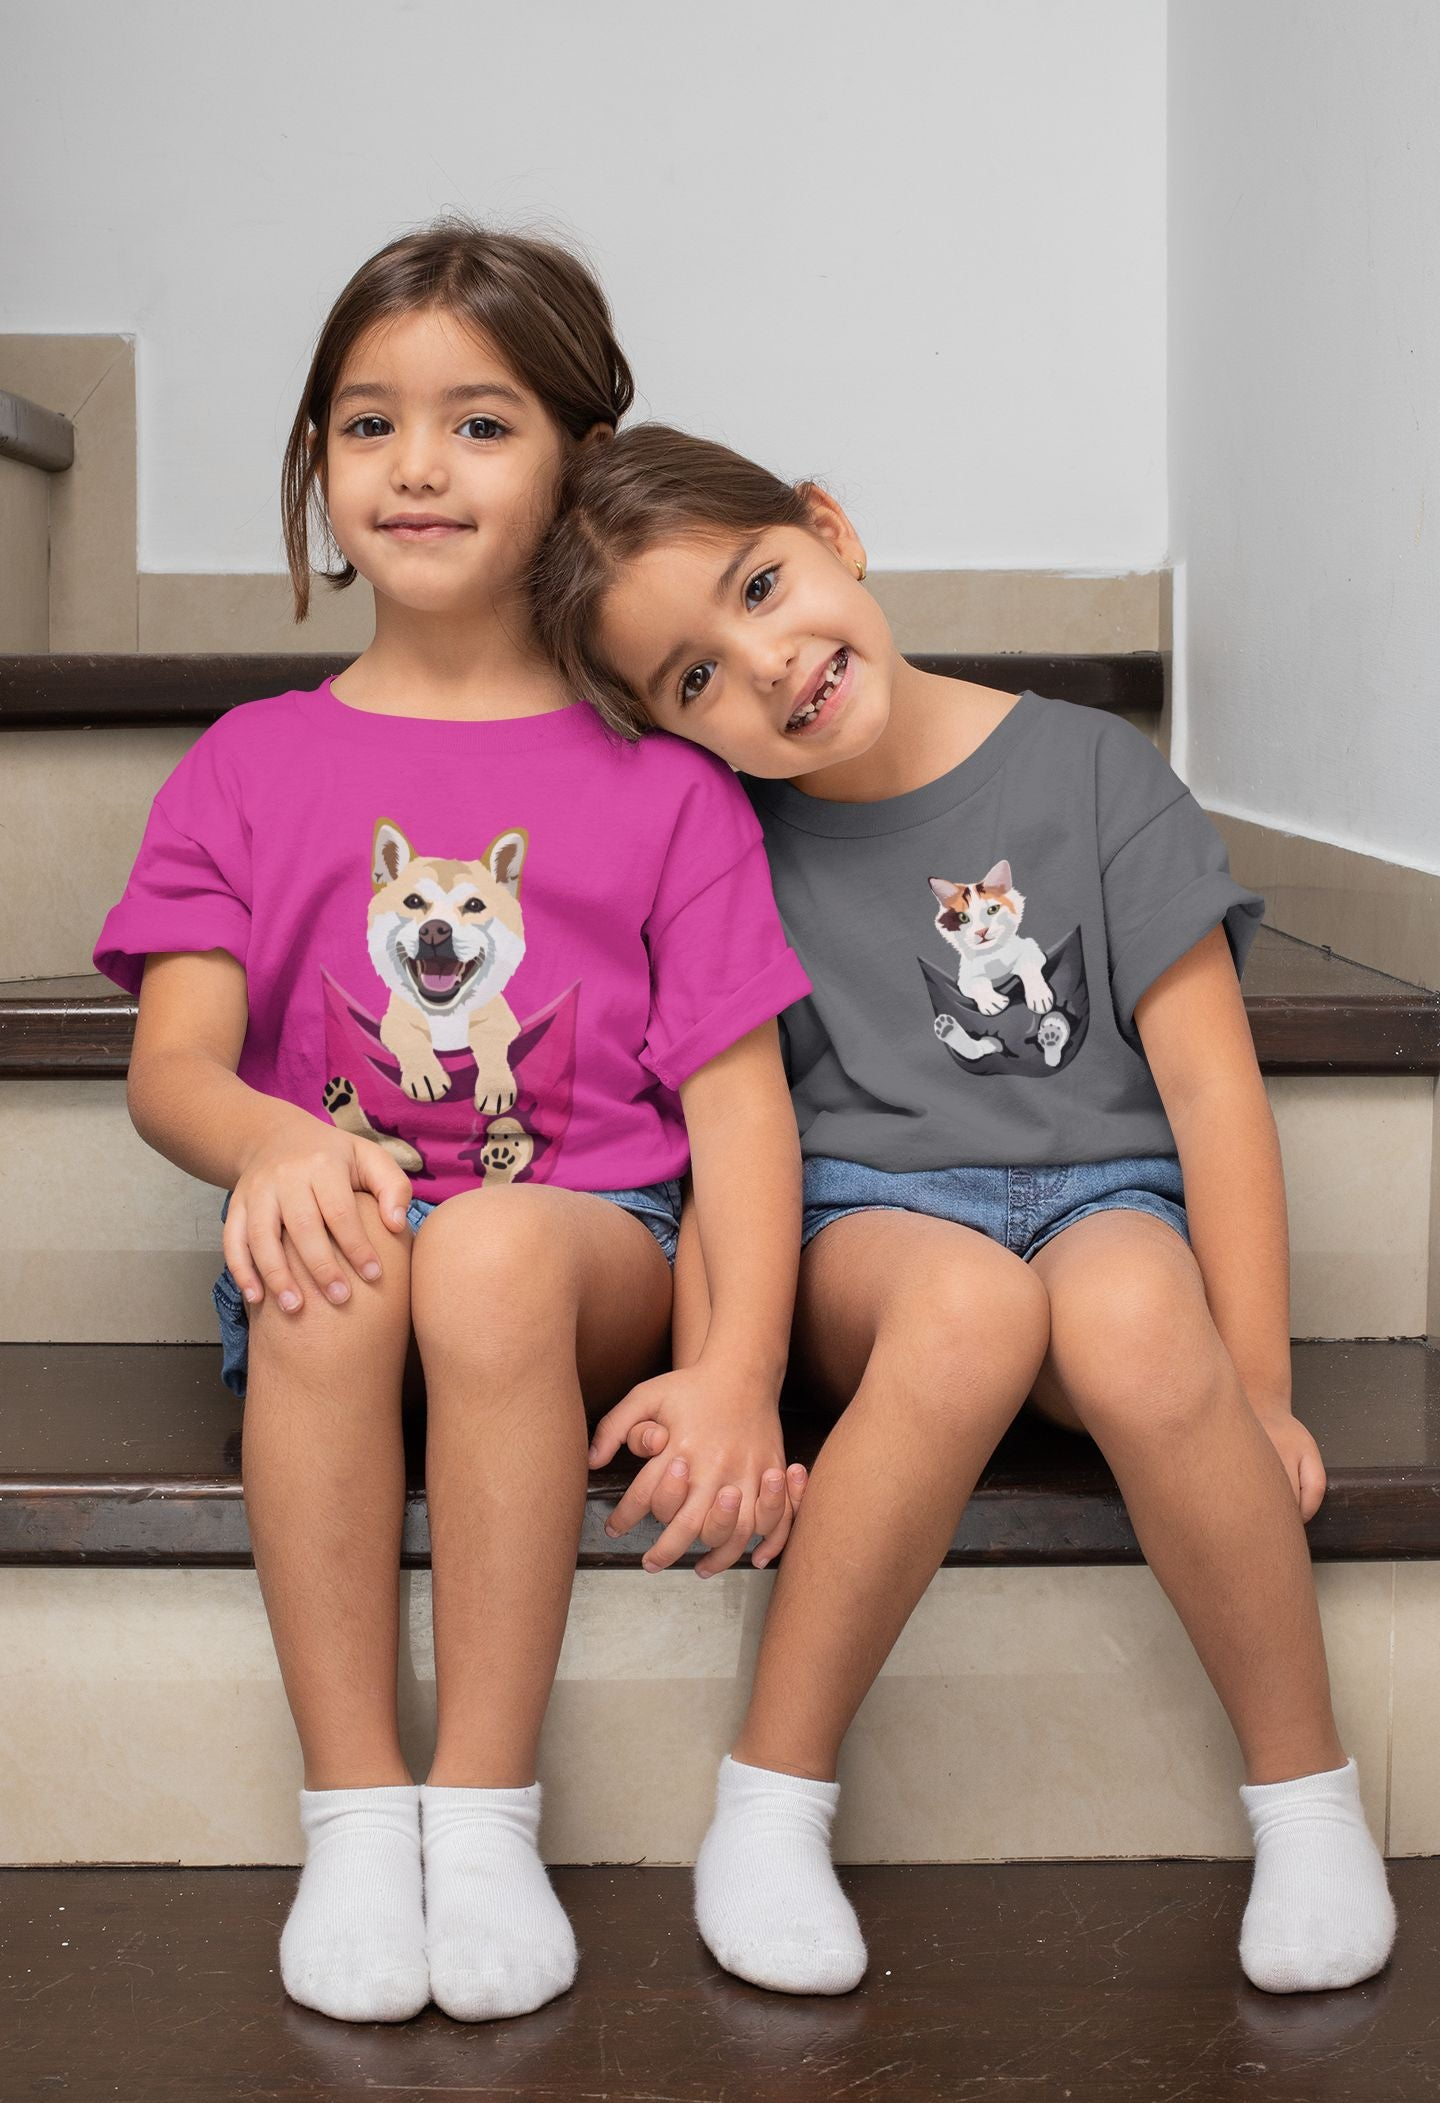 Pocket Buddies Kids Softstyle Tee - Completely Customizable